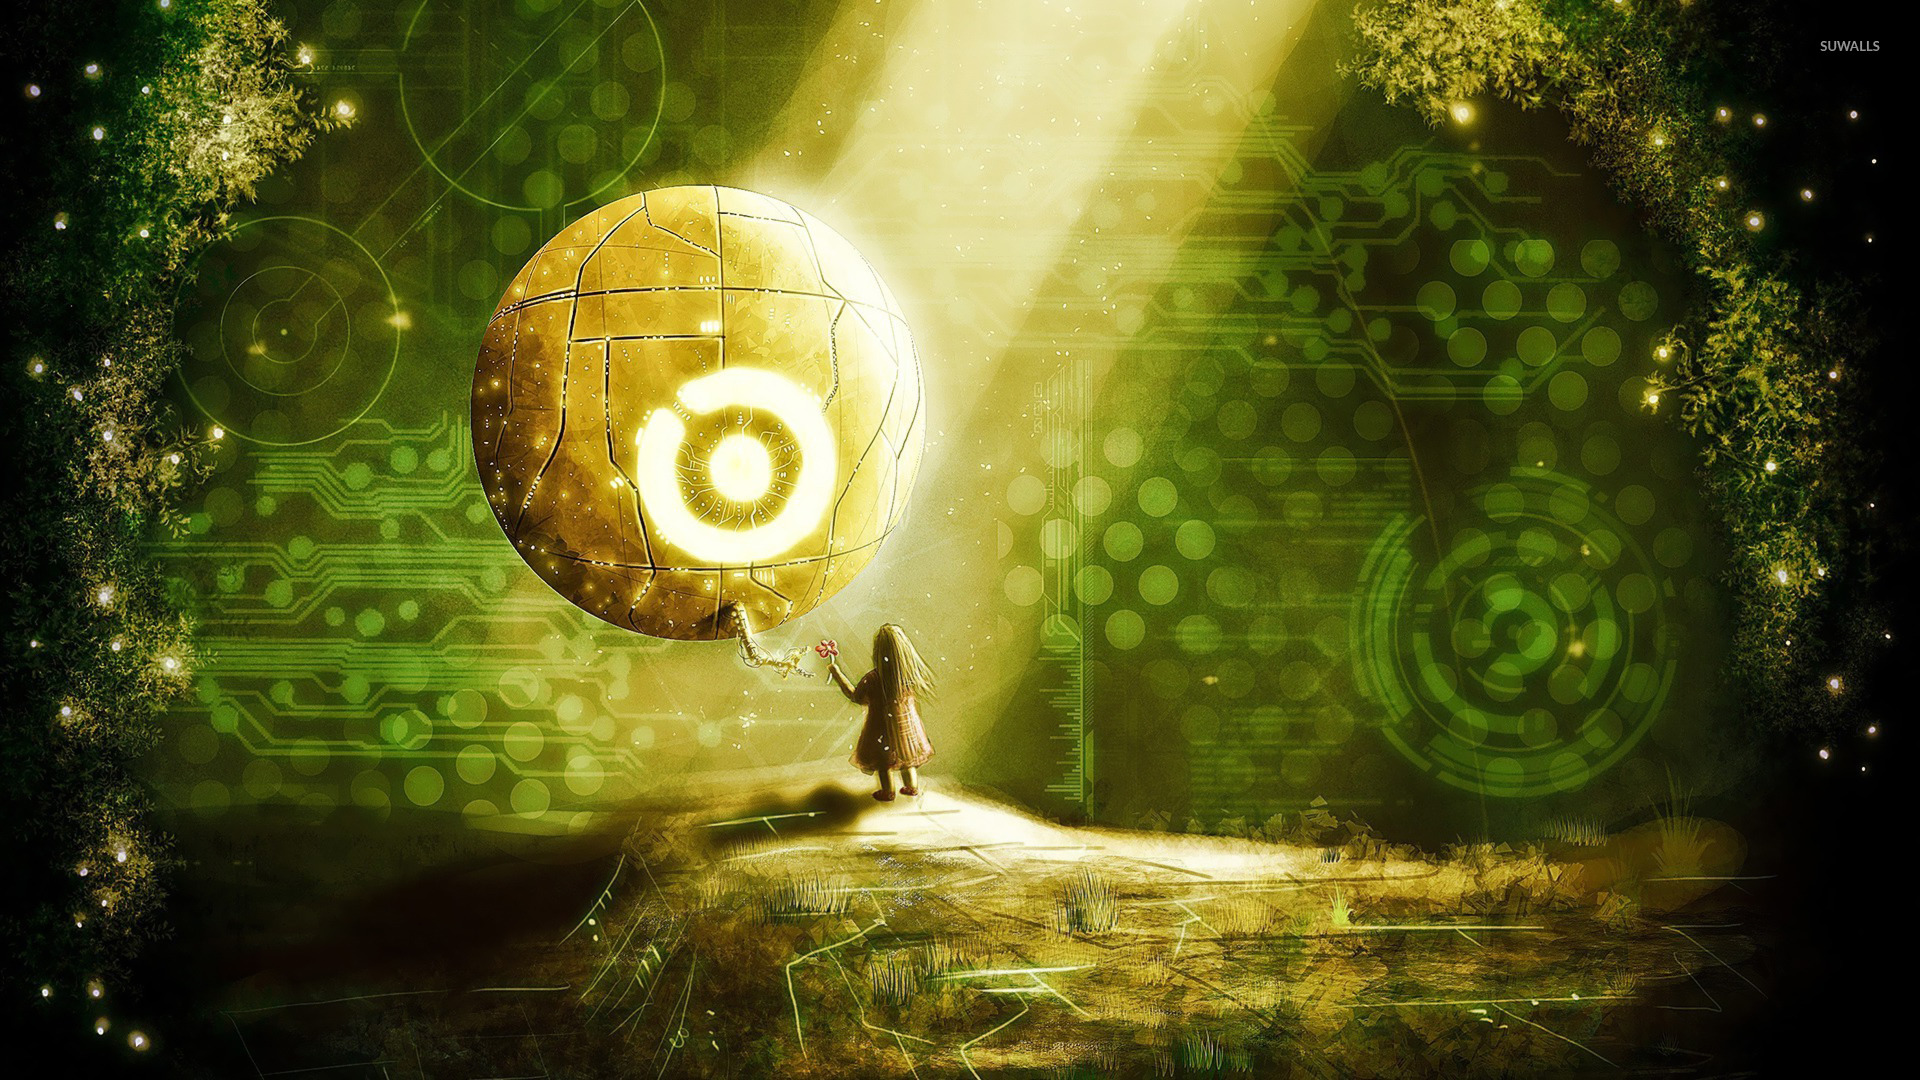 Girl and orb wallpaper - Fantasy wallpapers - #20109